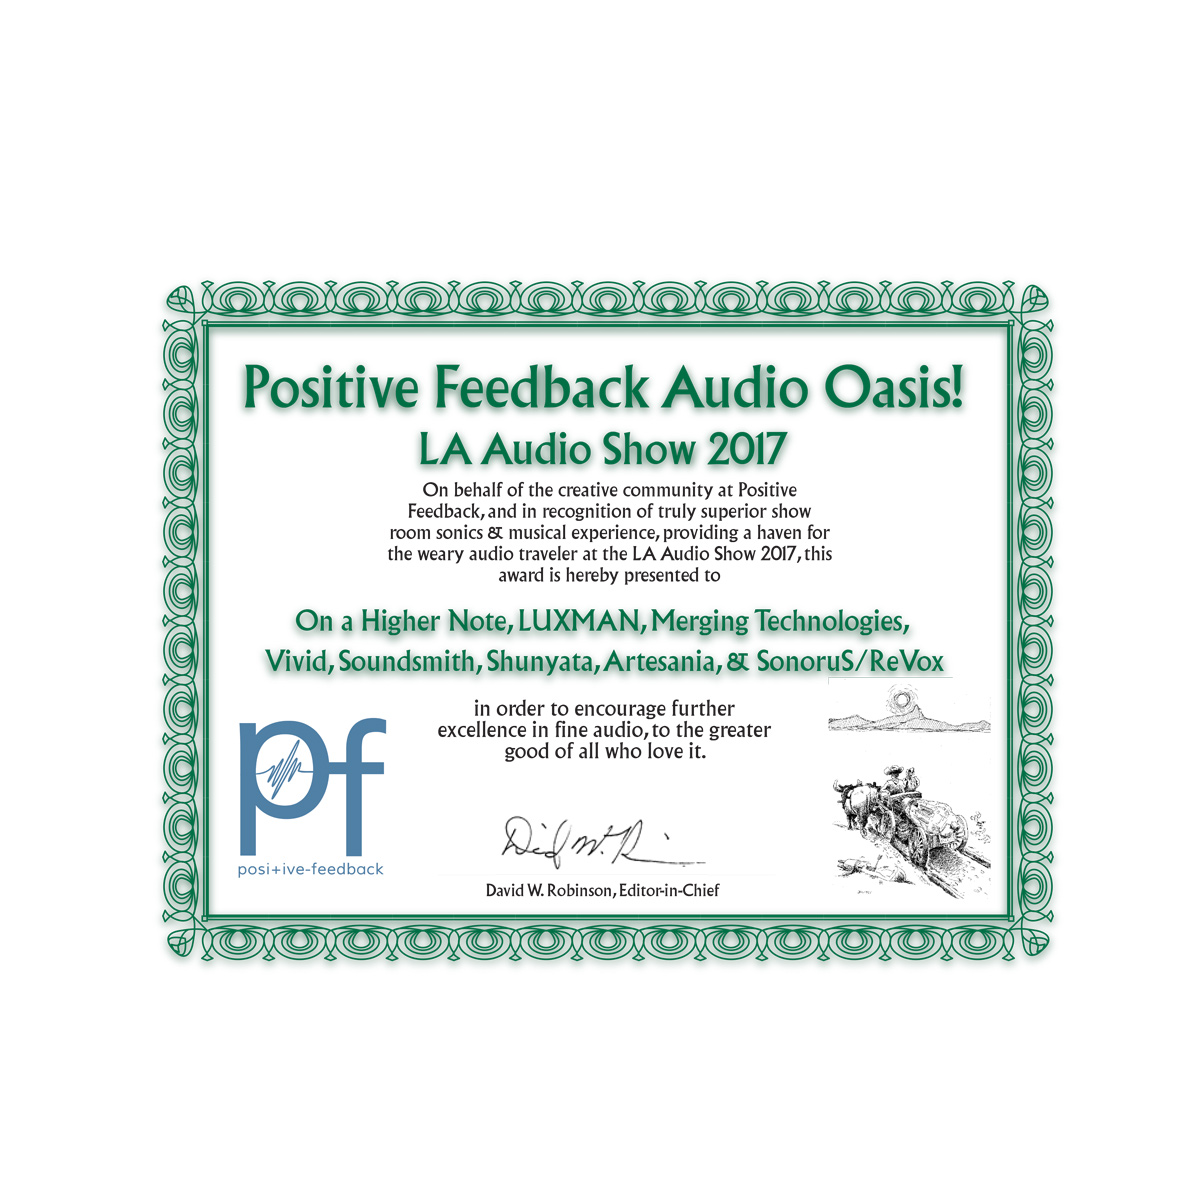 Positive Feedback Audio Oasis - LA Audio Show 2017